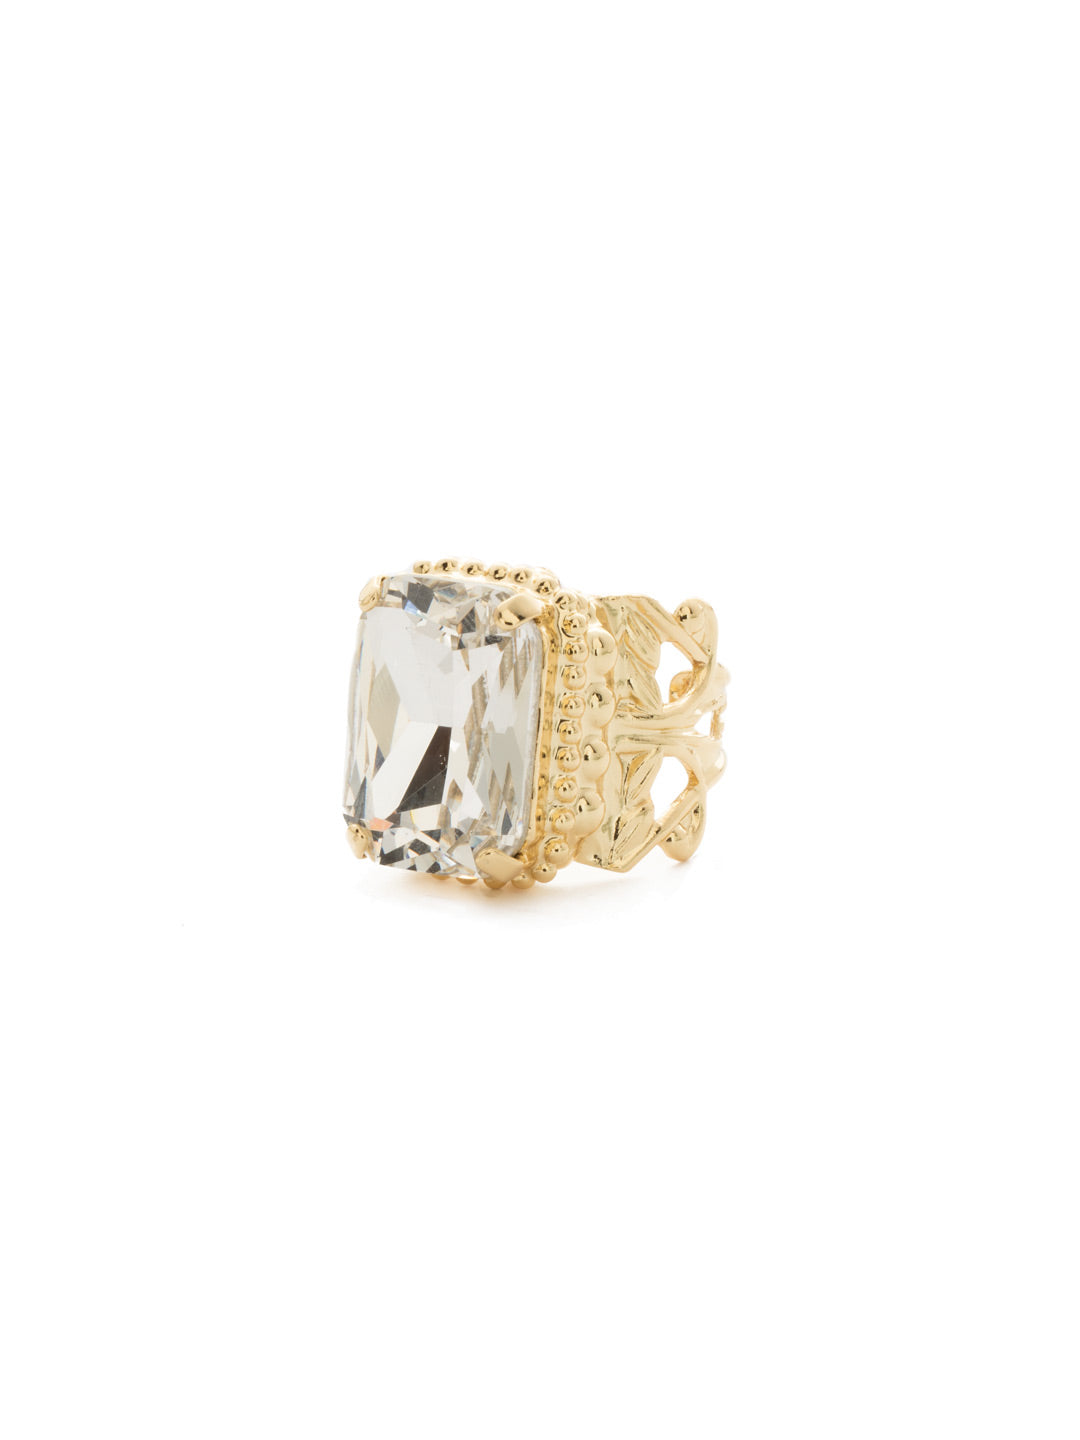 Emerald Cut Band Ring - RDG32BGCRY